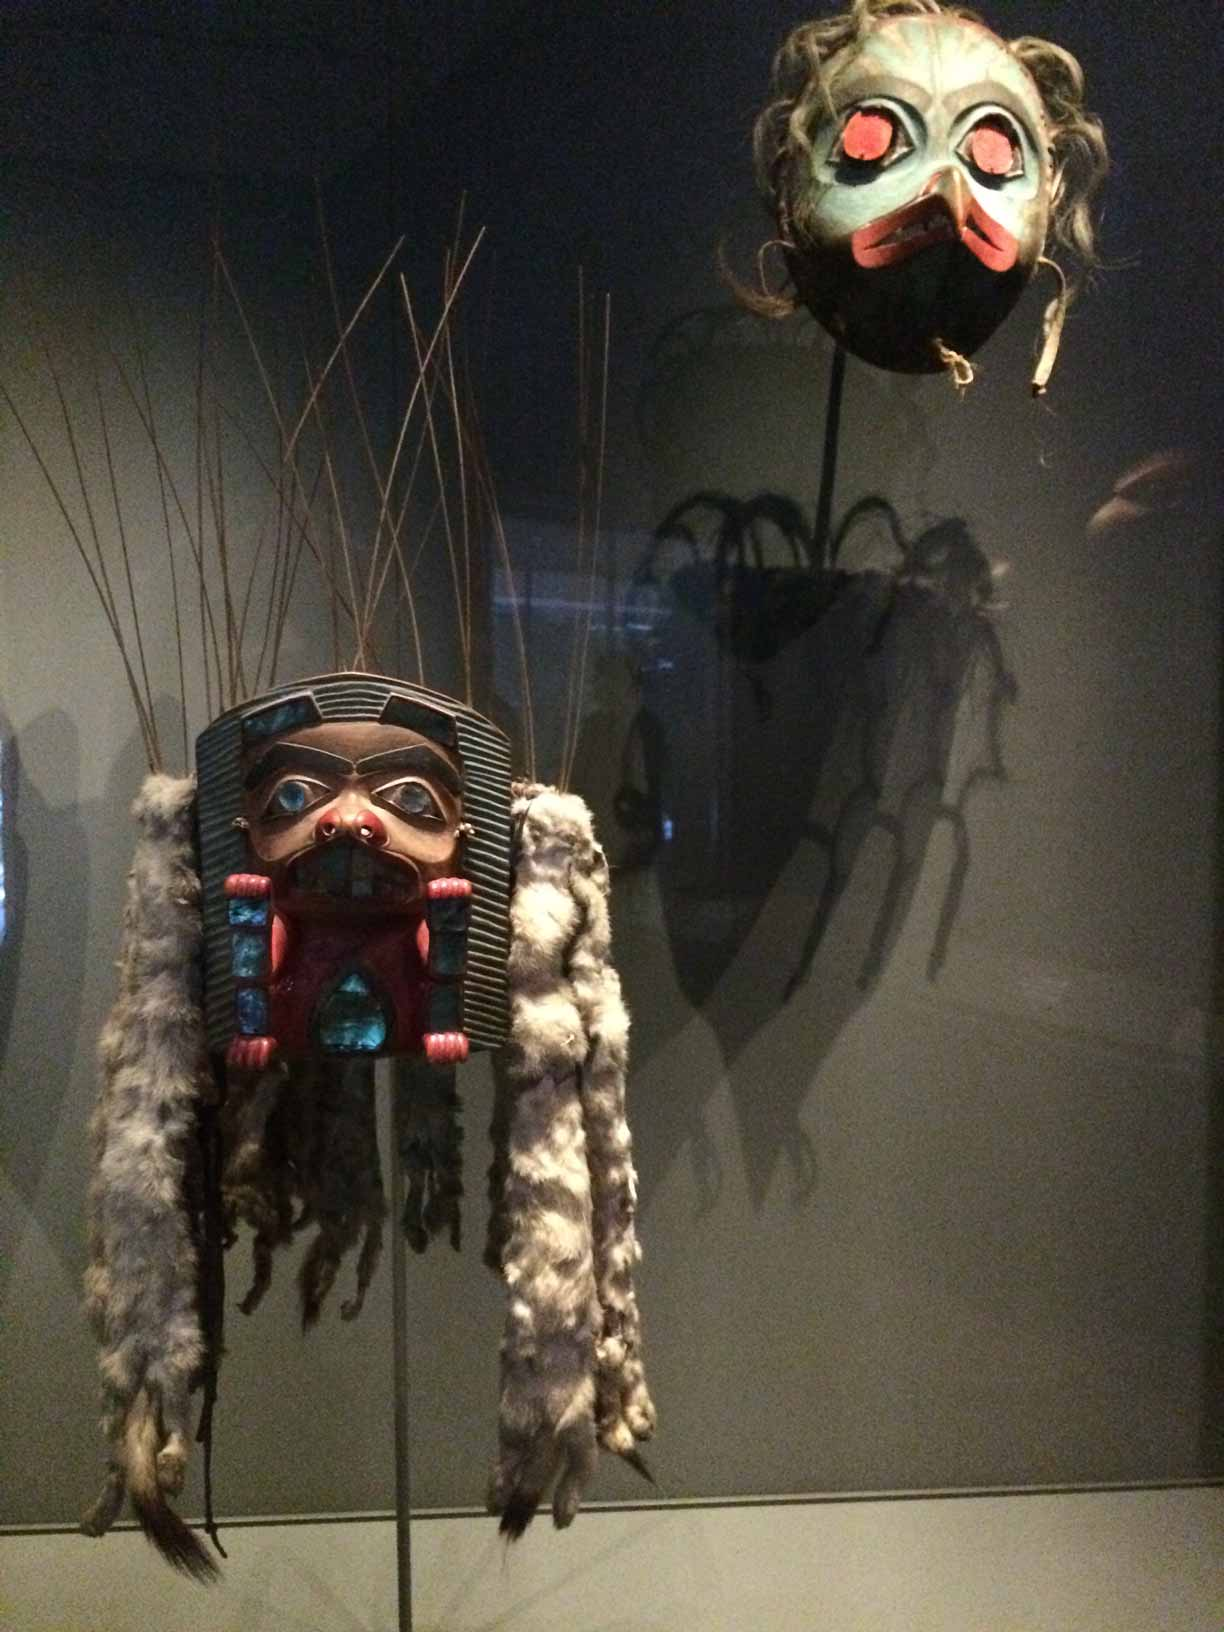 3Ceremonial-Masks-Tlingit-nation,-c--1840,-wood-with-pigment,-abalone,-hide,-ermine,-felt,-baleen-and-sea-lion--whiskers,-Audain-Art-Museum-Collection